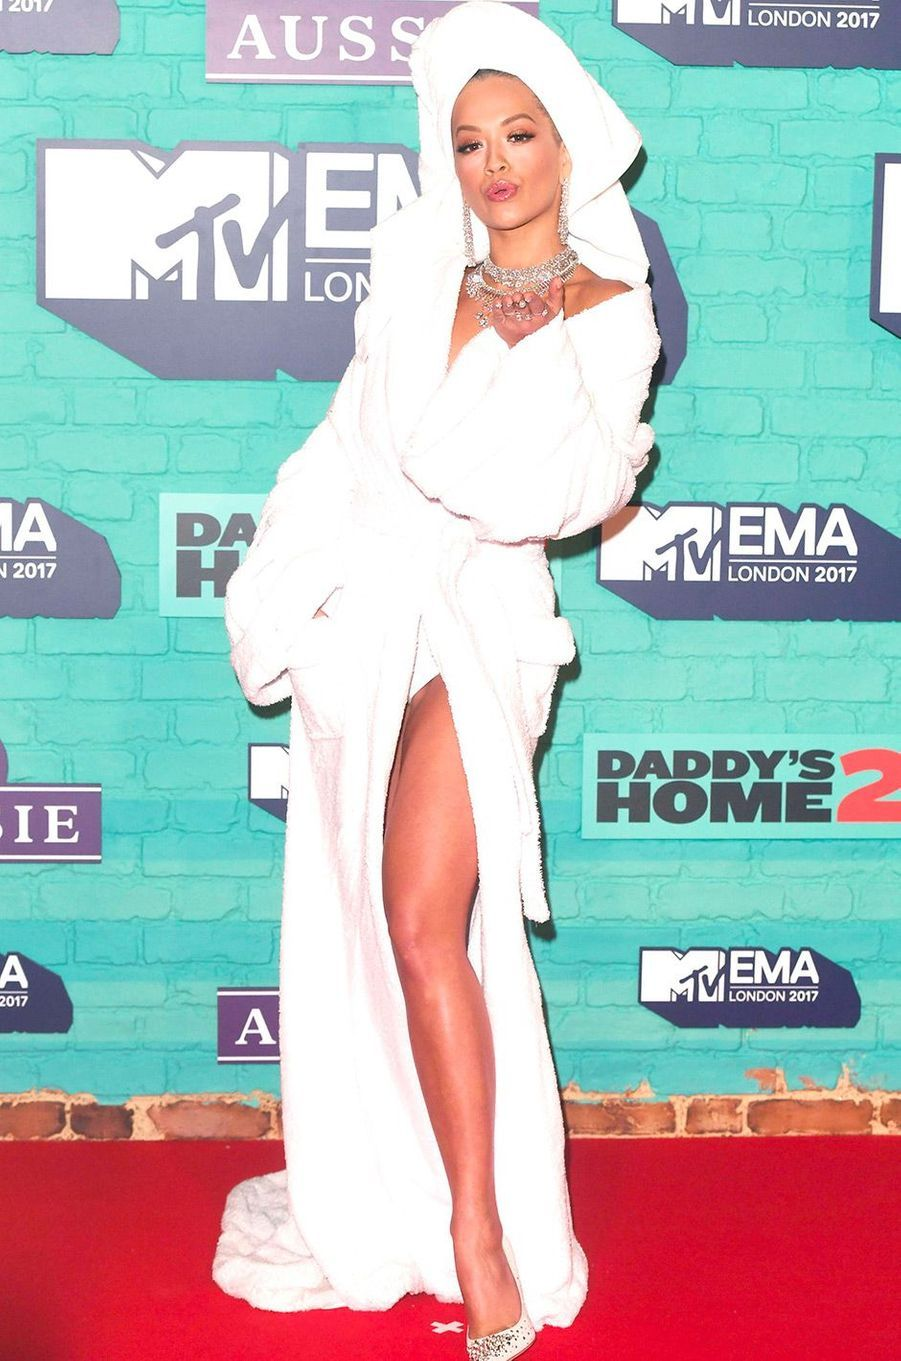 Rita Ora aux MTV Europe Music Awards dimanche 12 novembre, à Londres